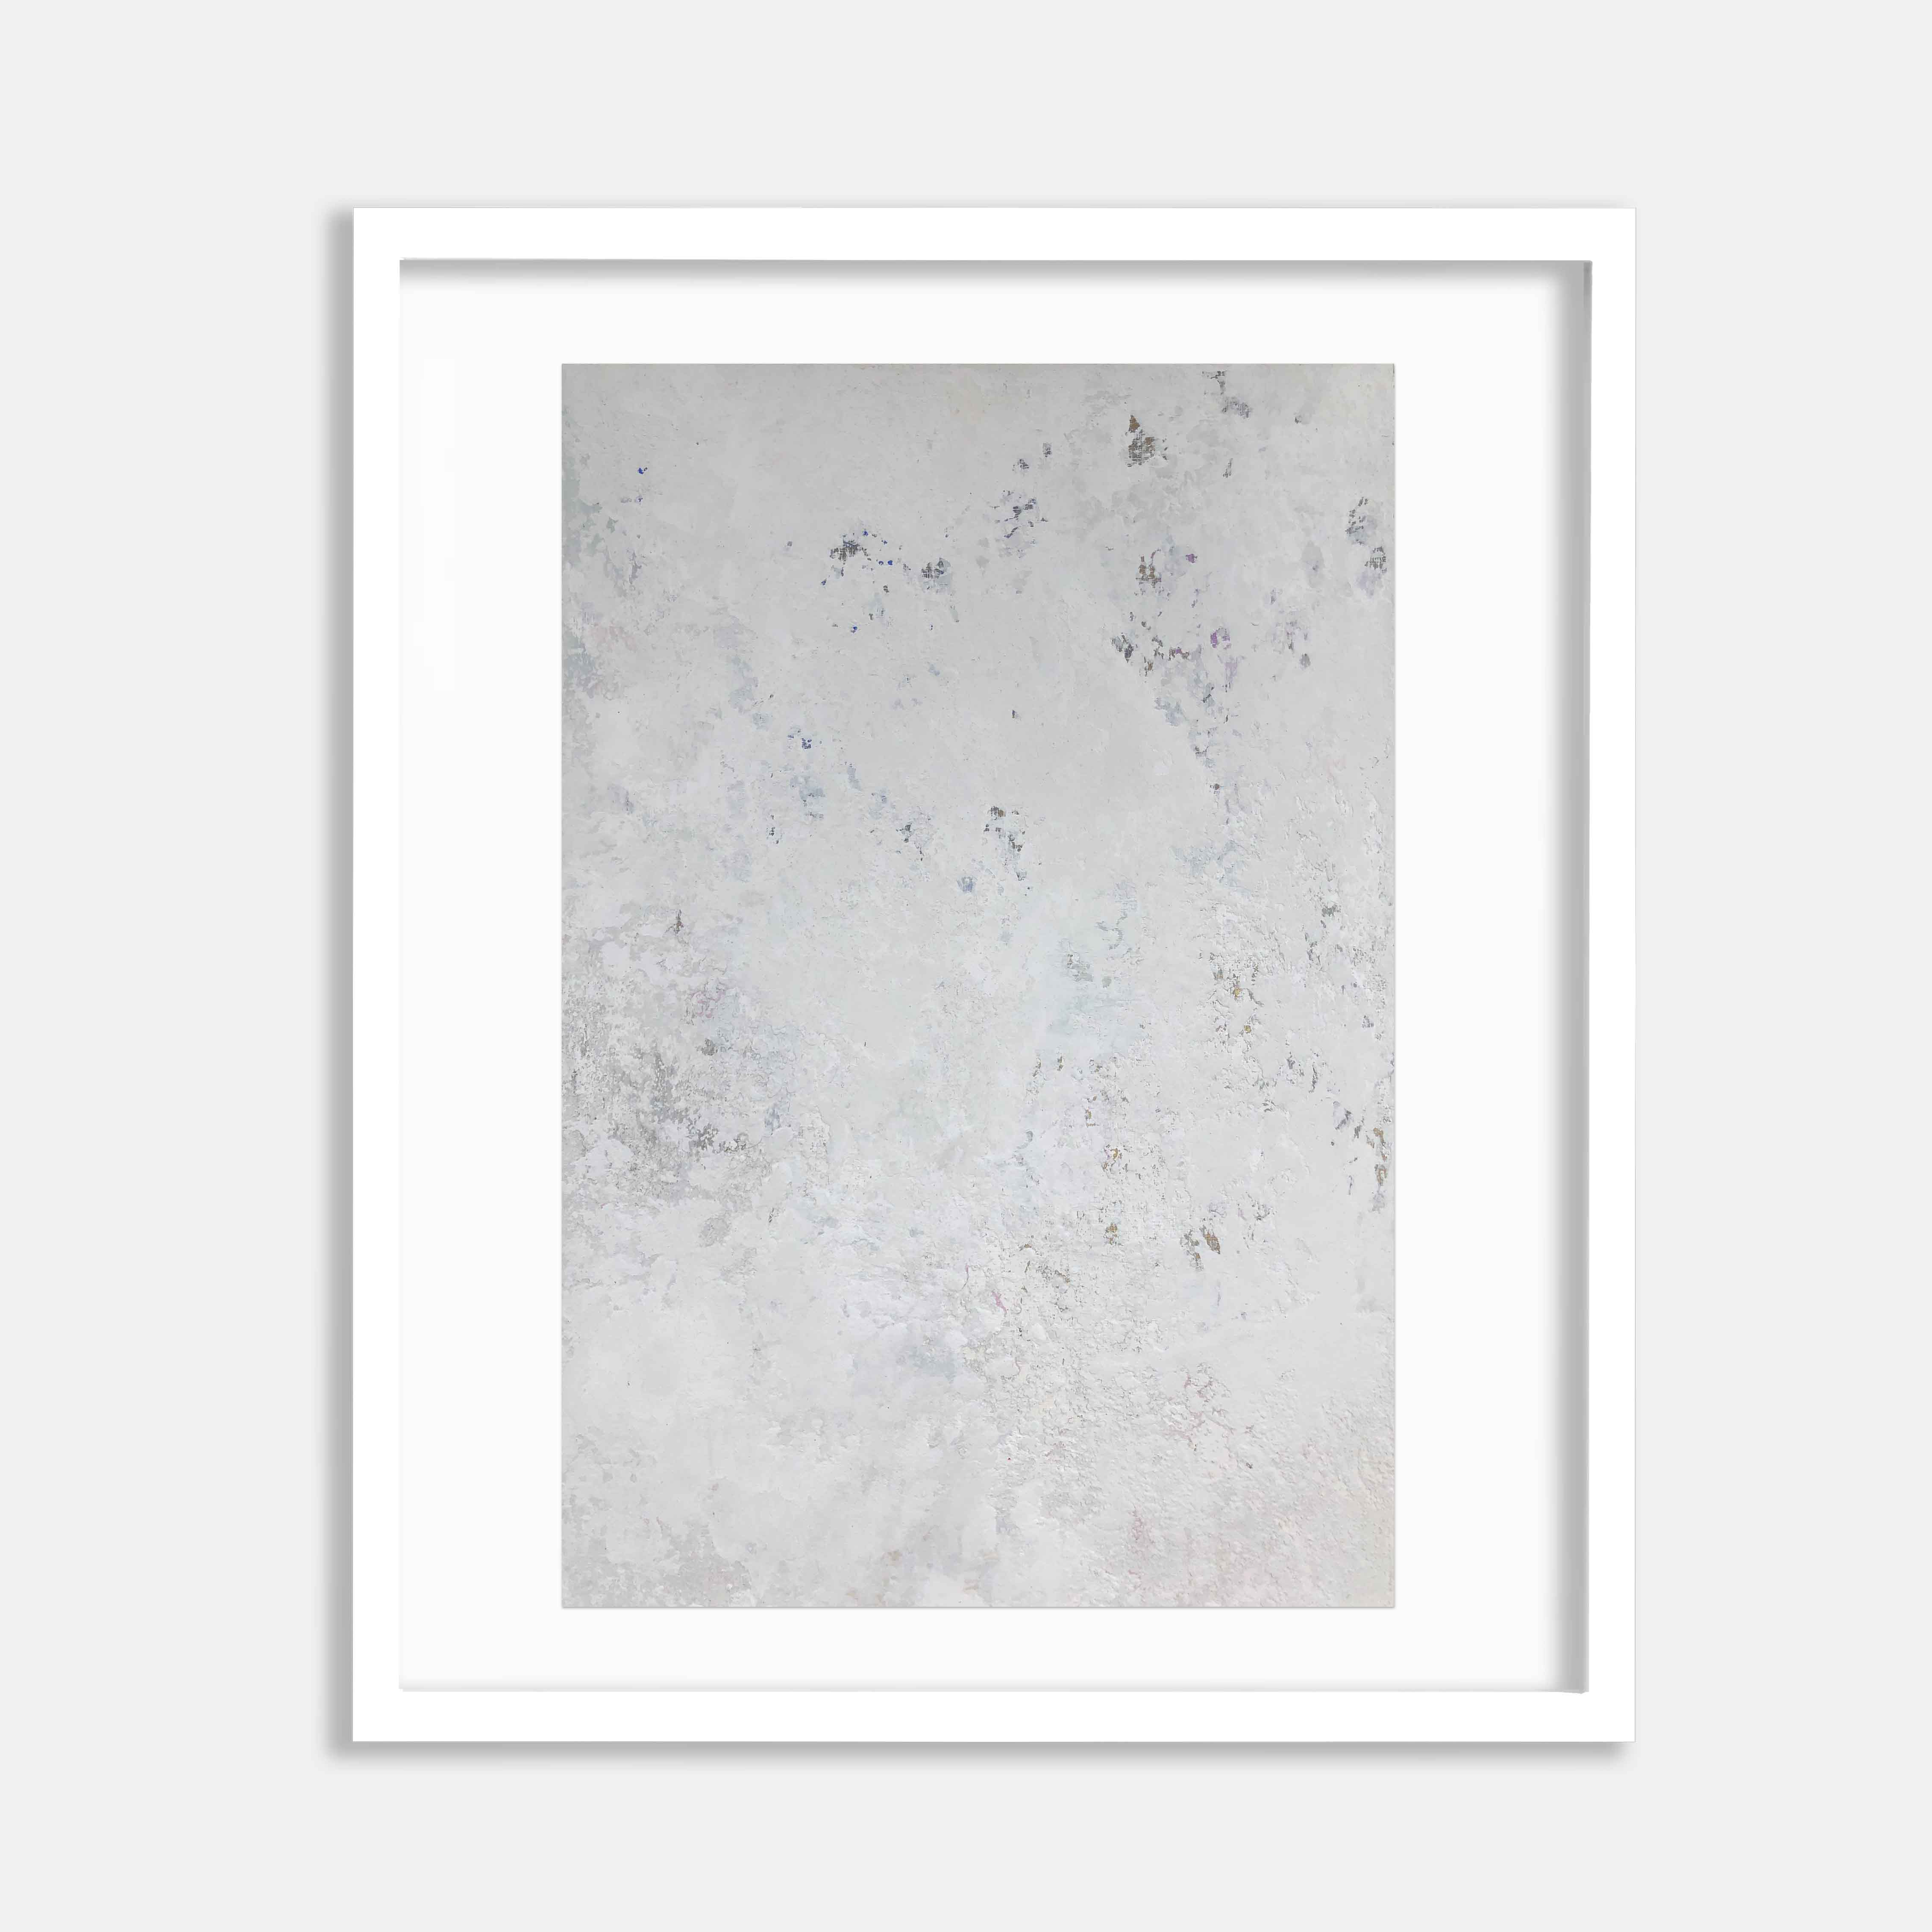 Untitled (White Painting 18-21)